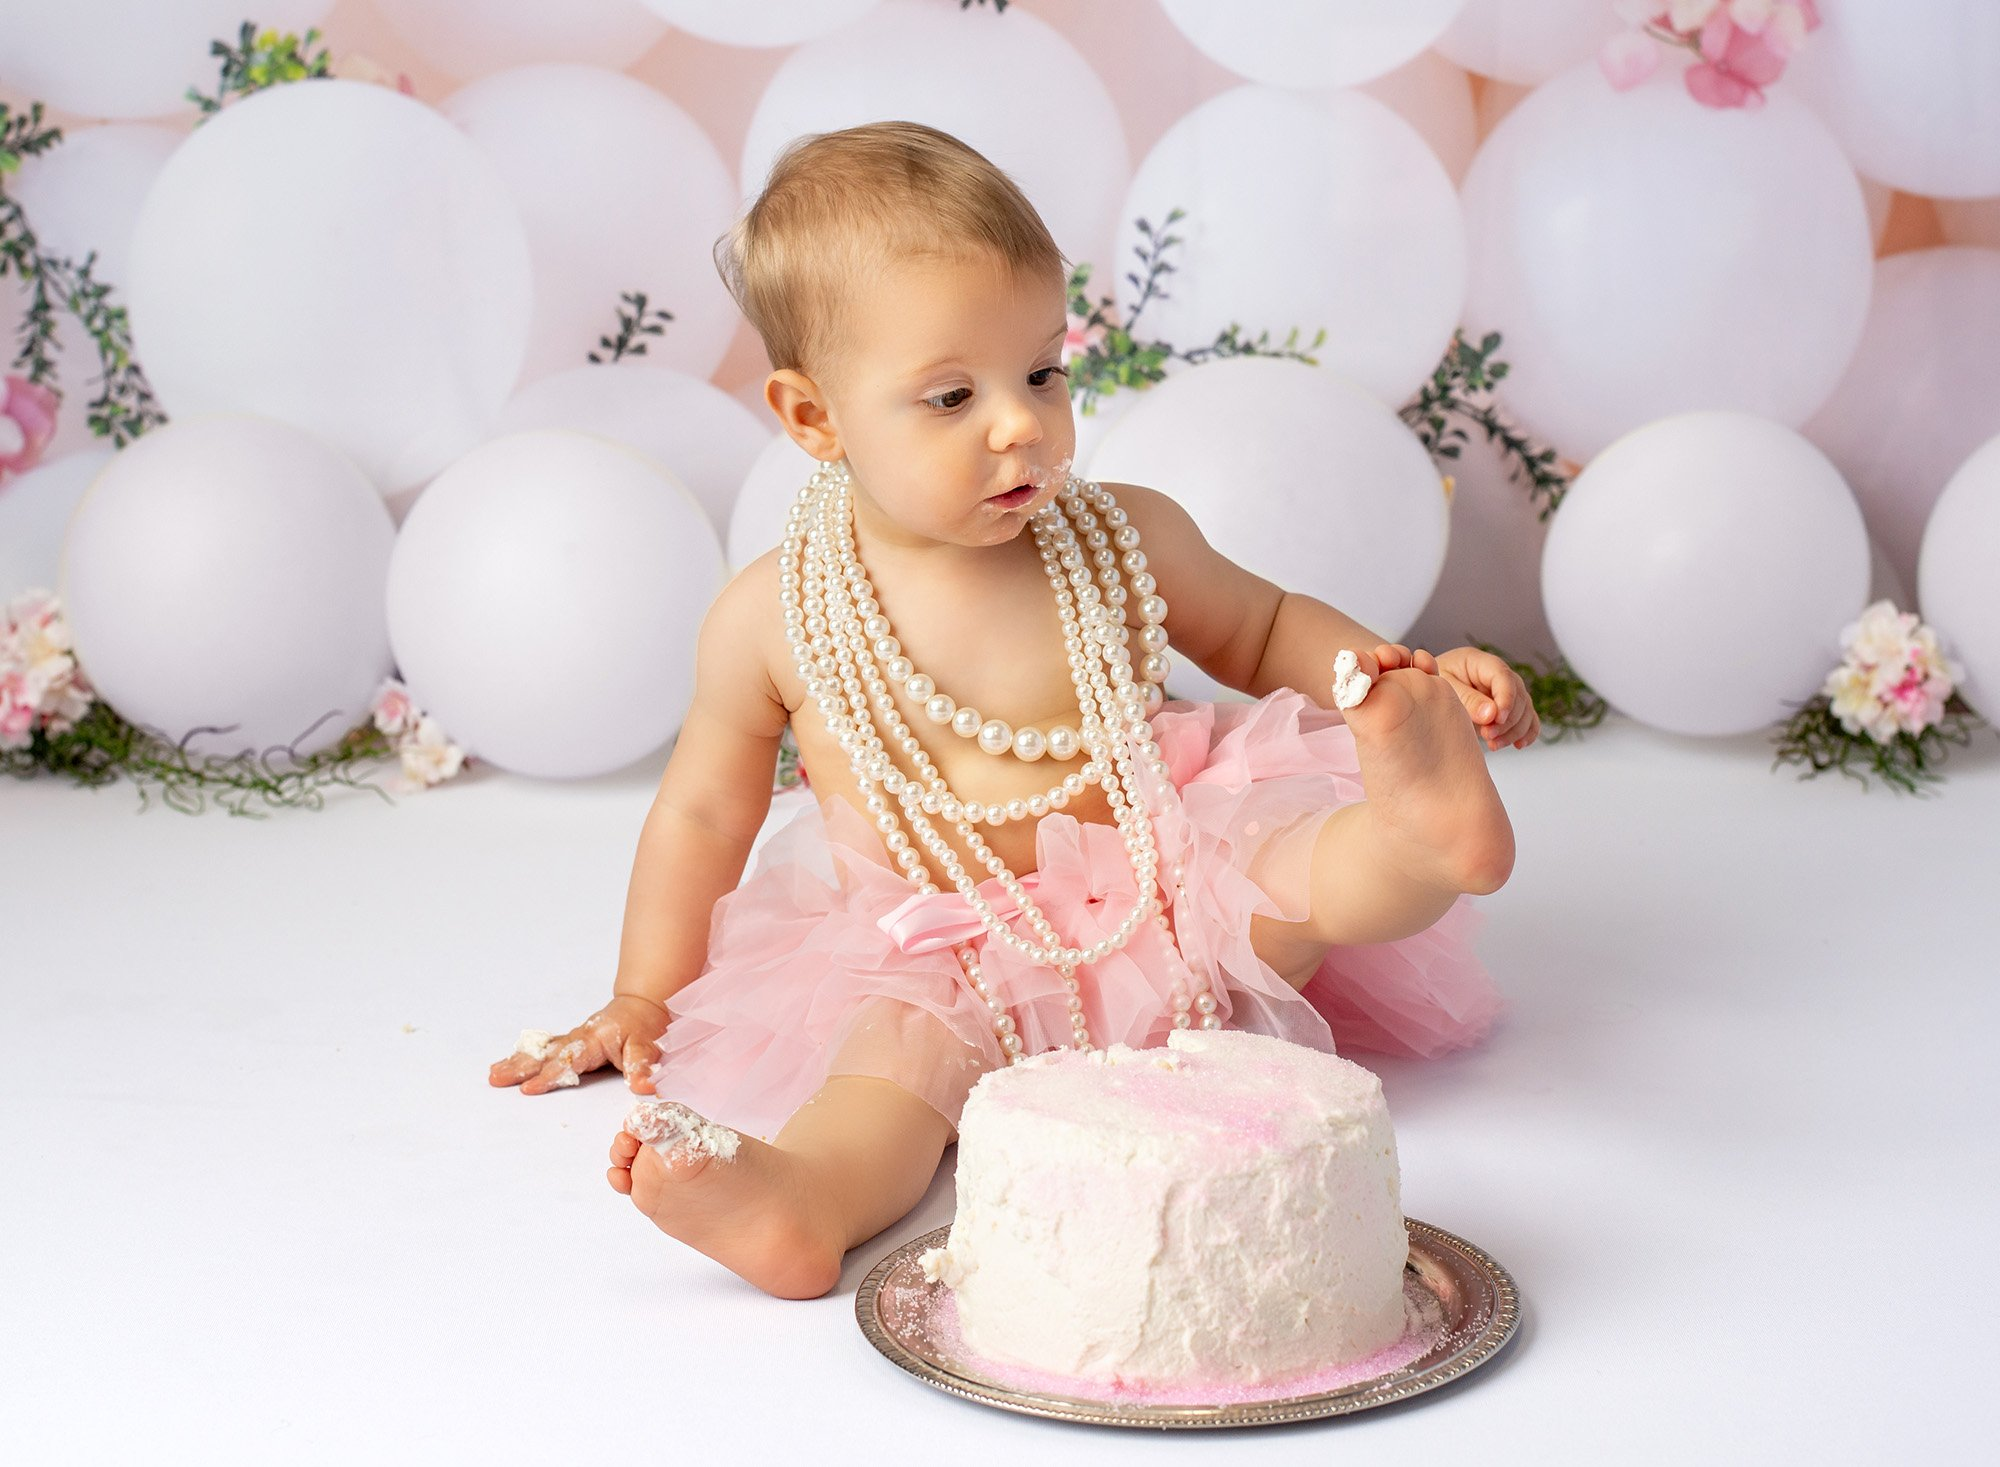 1 year baby photoshoot baby girl wearing layered pearl necklace and pink tutu sitting in front of cake holding up foot with frosting on toe with white balloons in background